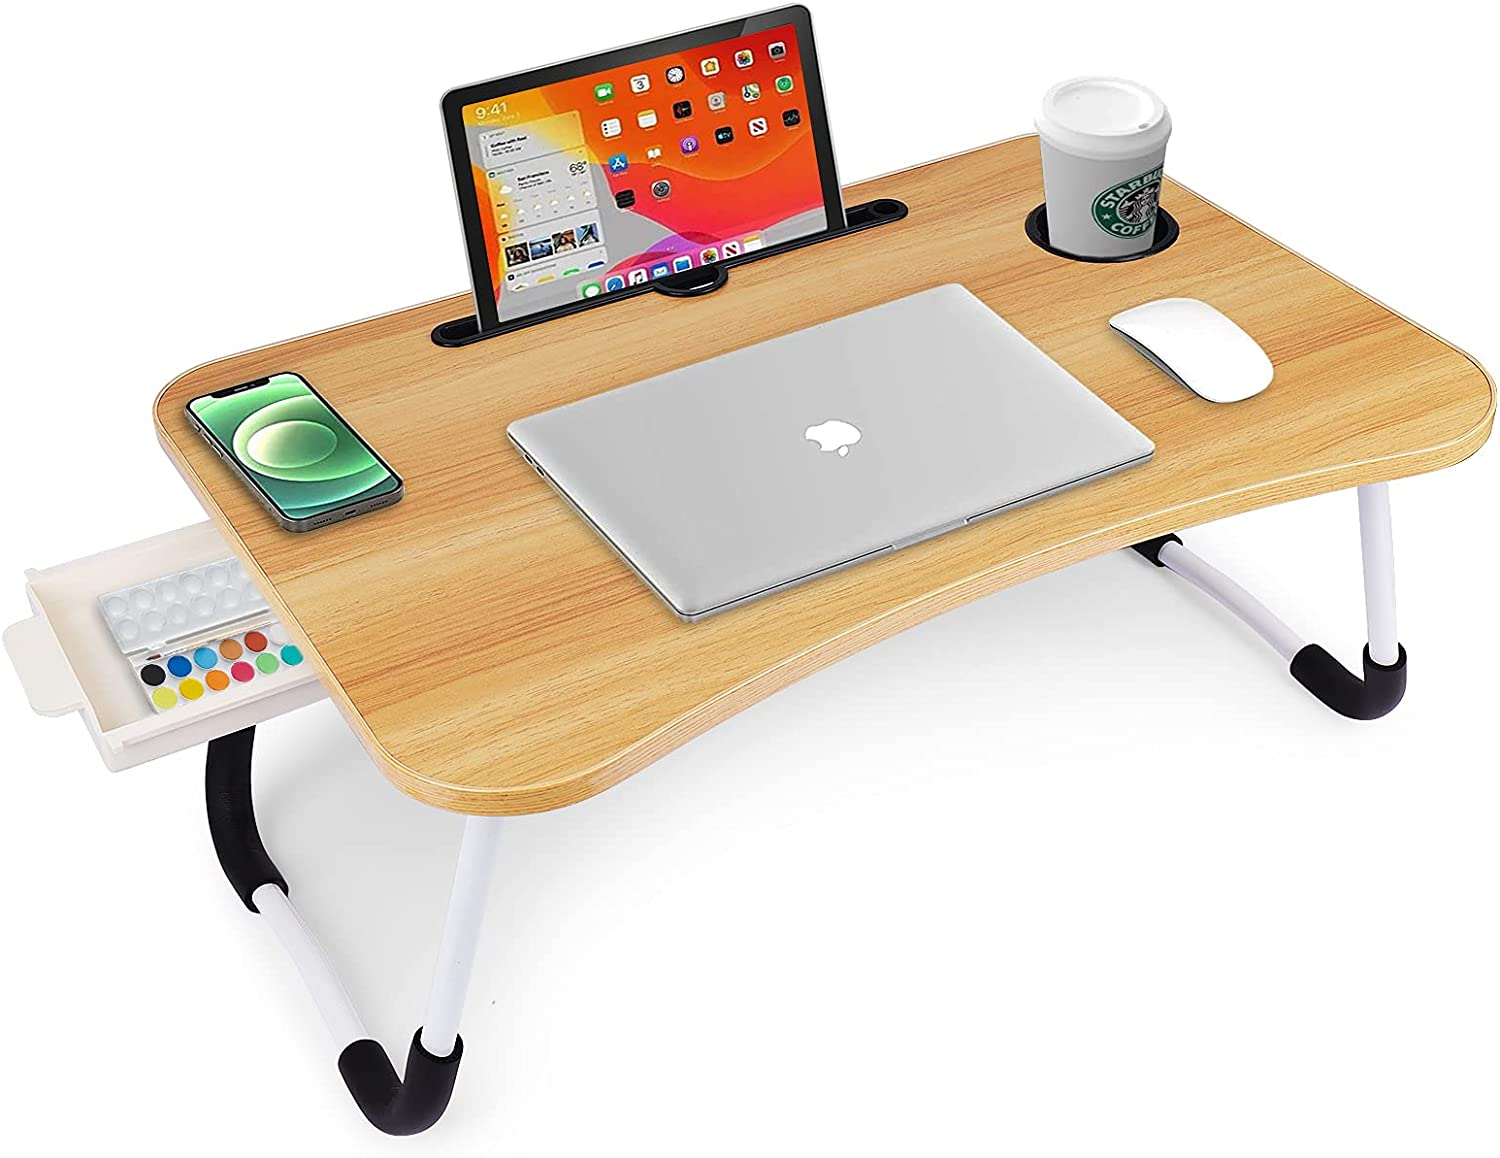 Laptop Desk Foldable Bed Table Portable Multi-Function Lap Bed Tray Table with Storage Drawer and Cup Slot, Notebook Stand Breakfast Bed Tray for Sofa, Bed, Terrace, Balcony, Garden